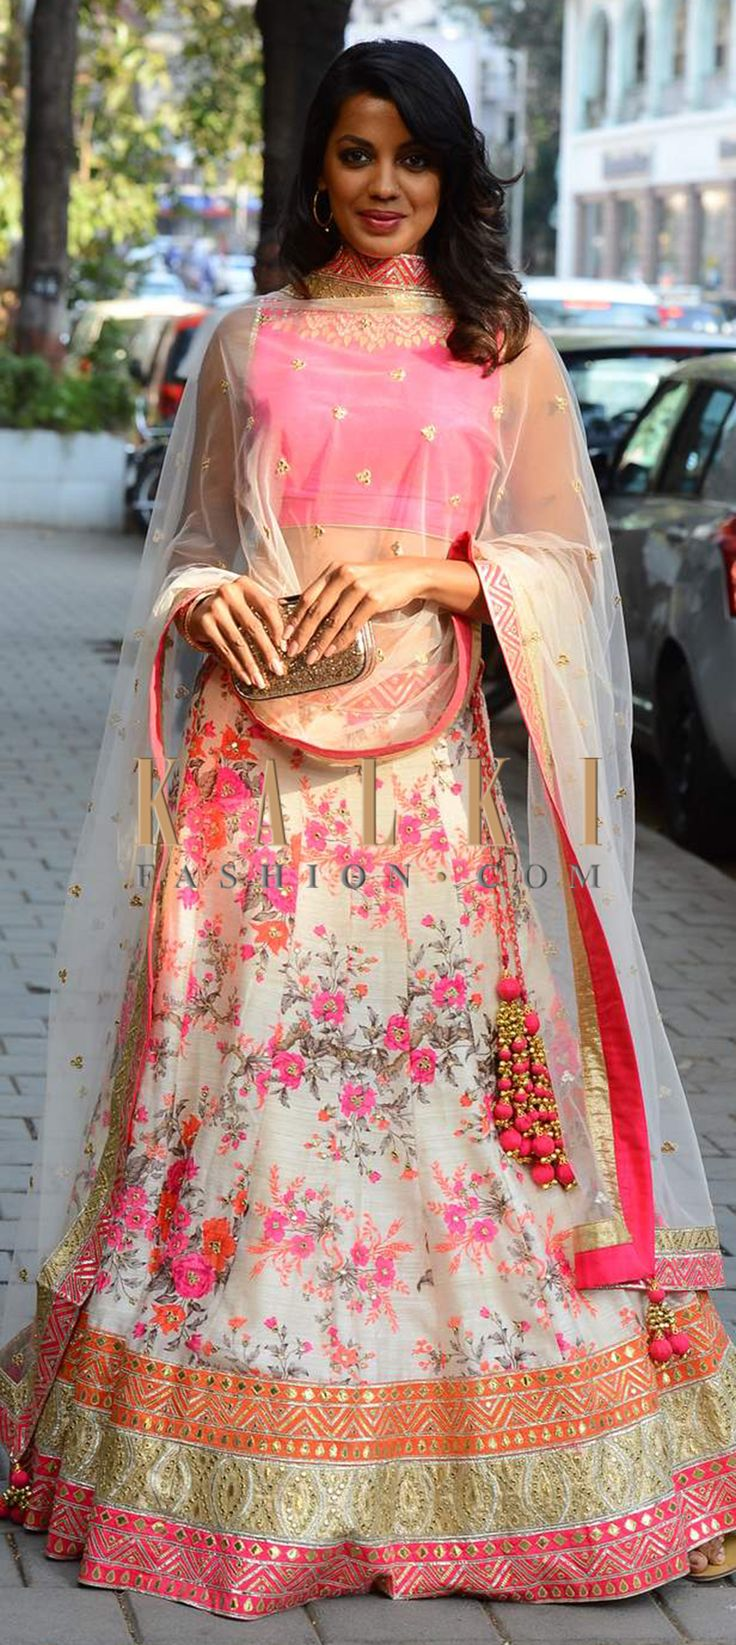 Must have Bollywood Style! Find a style match to the celebrity look of your…